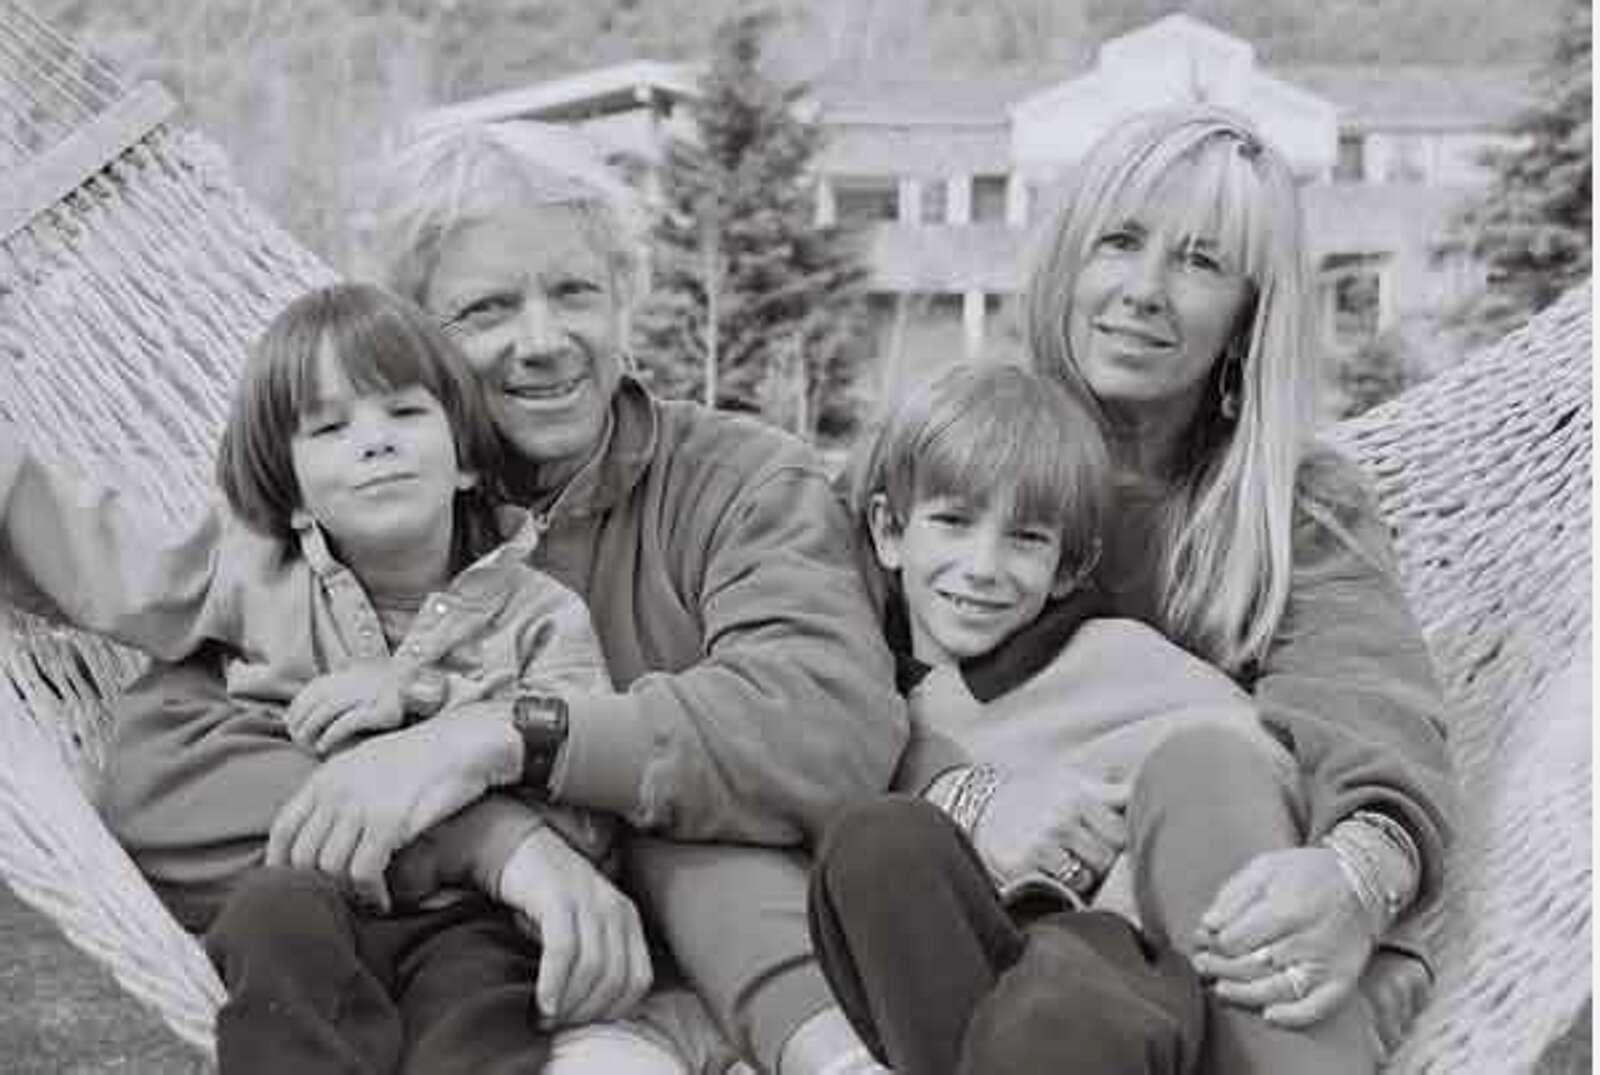 Art Daily and his late wife, Kathy, and two late sons, Shea and Tanner. (Courtesy photo)